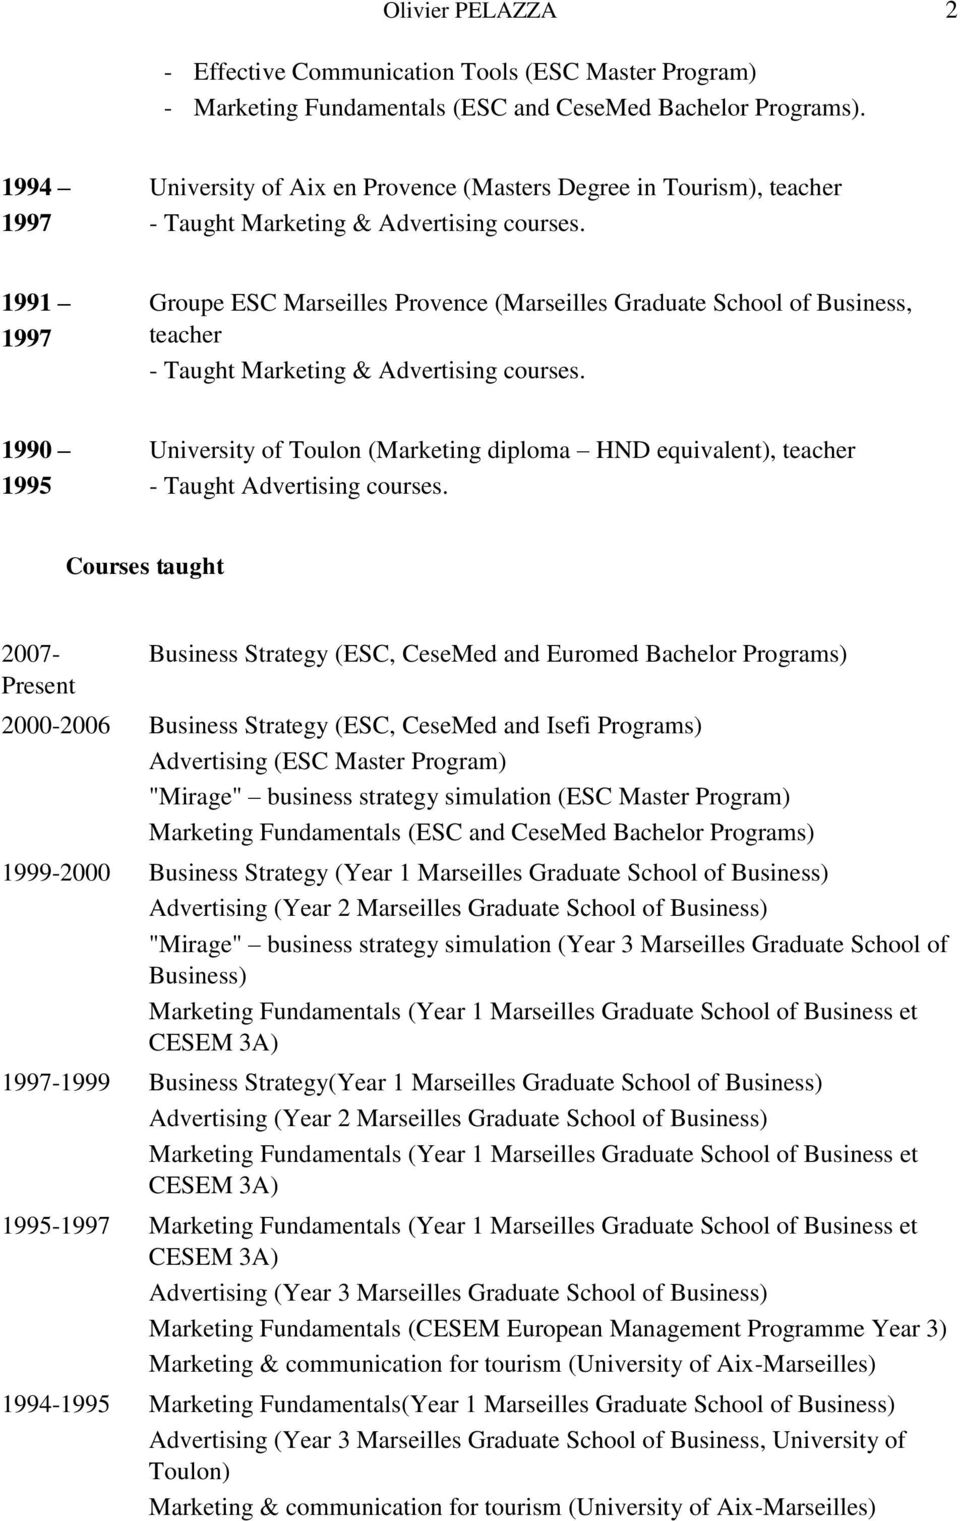 1991 1997 Groupe ESC Marseilles Provence (Marseilles Graduate School of Business, teacher - Taught Marketing & Advertising courses.